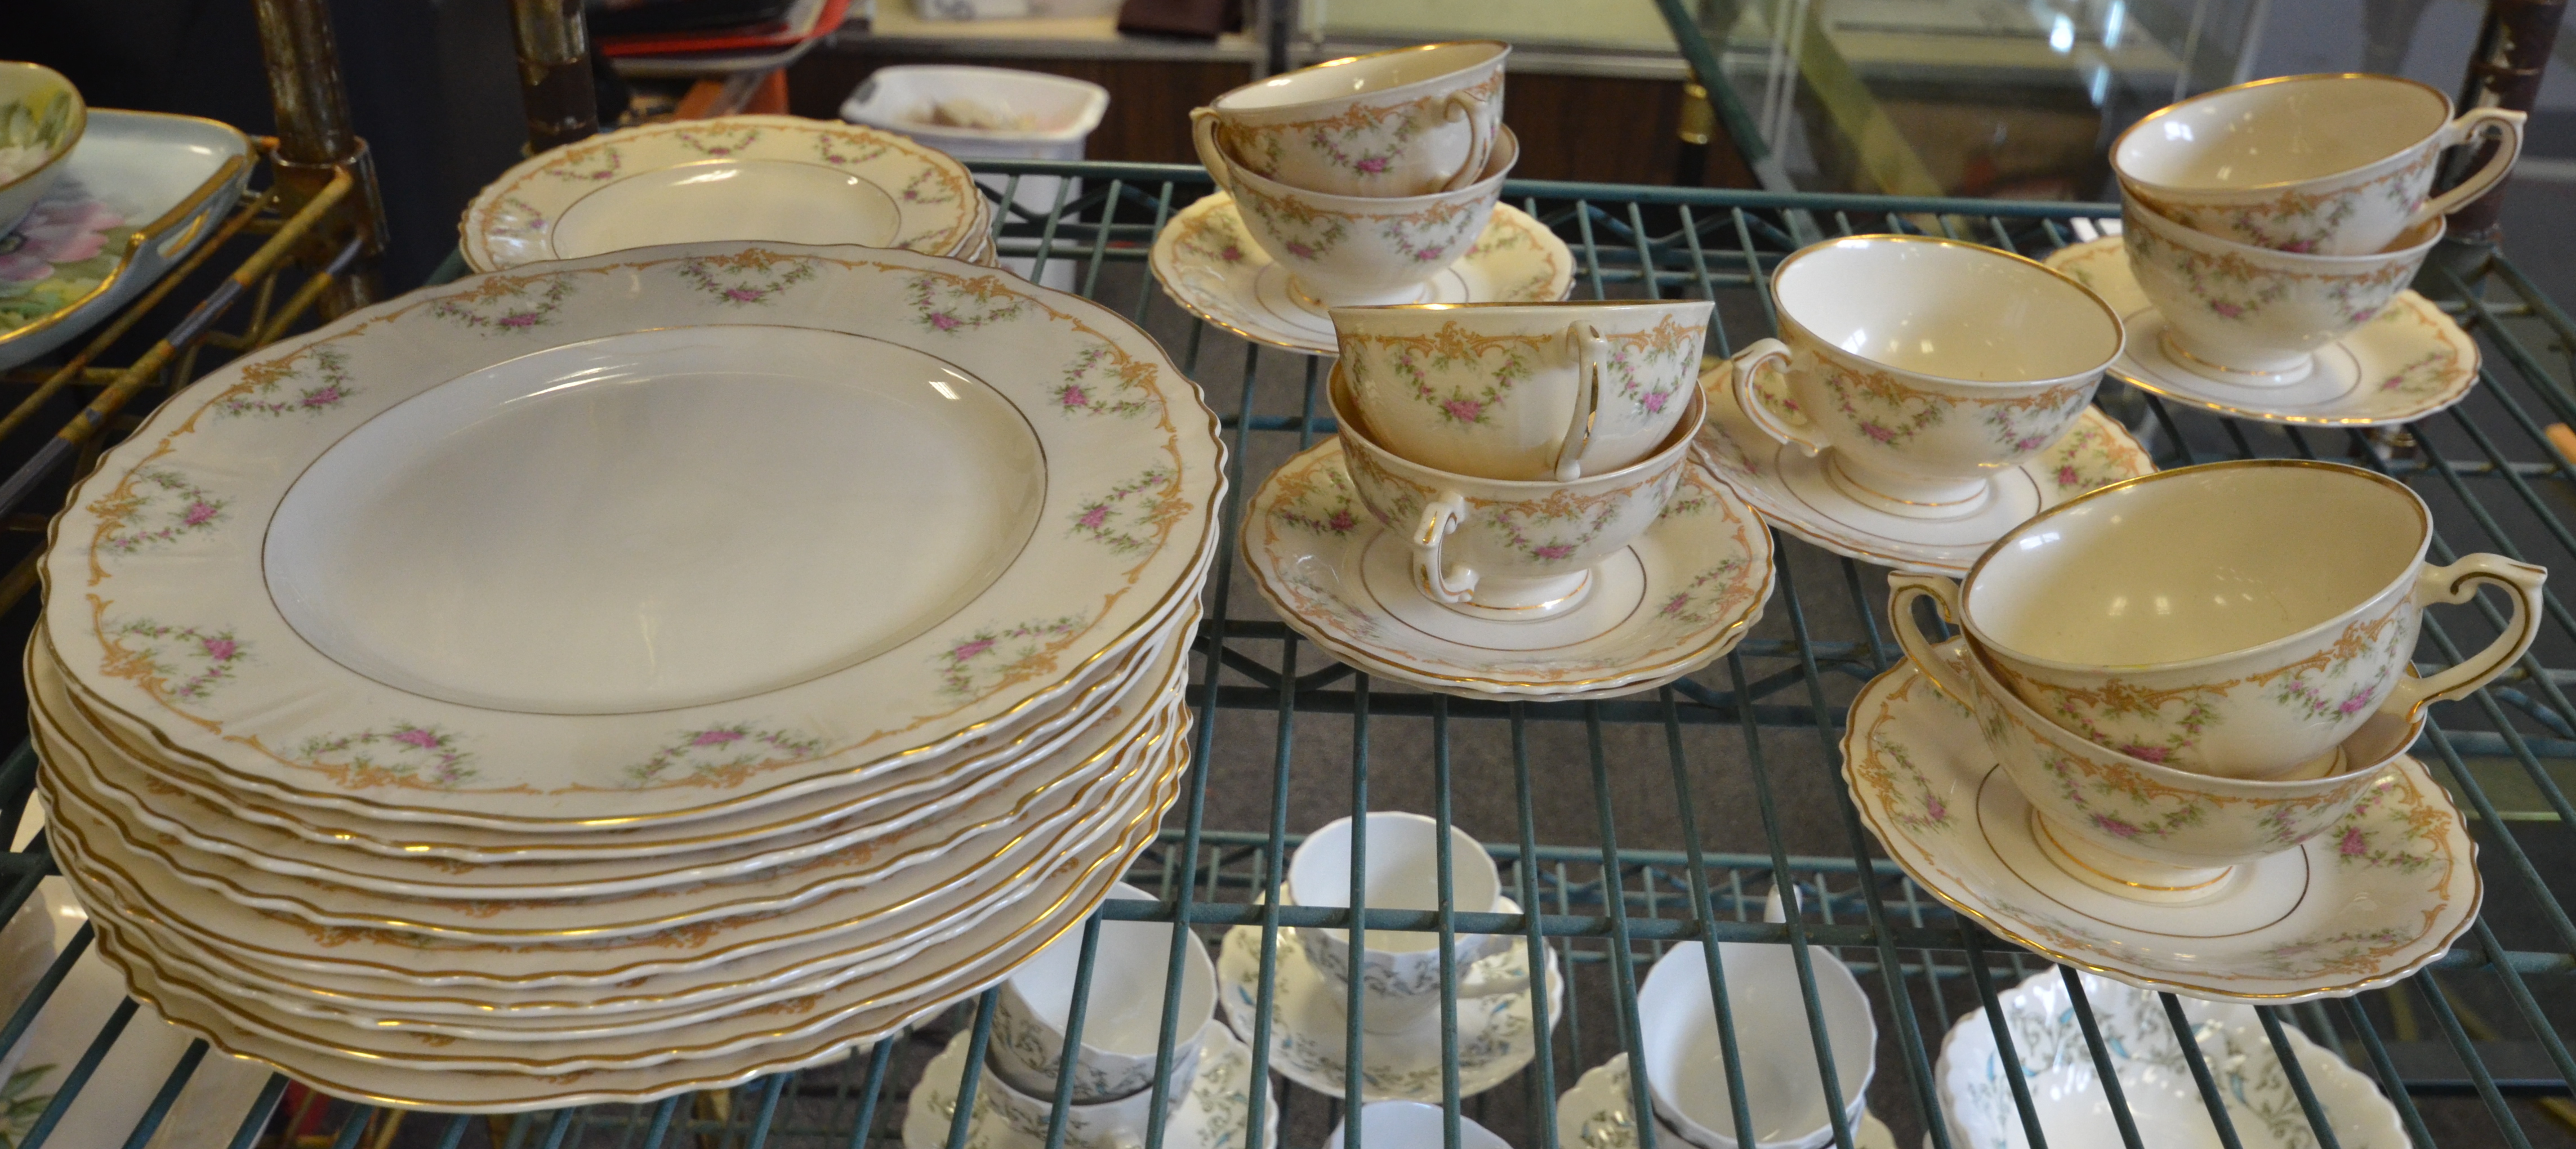 Dishes_009